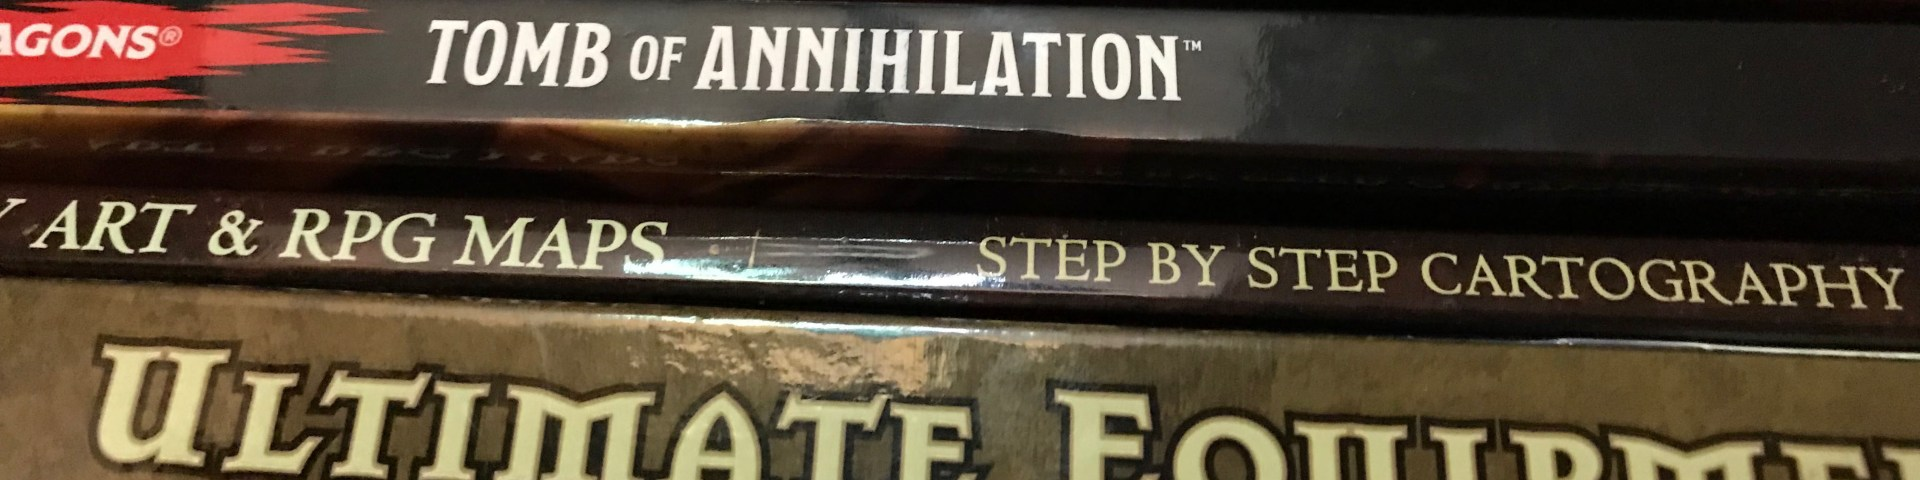 A stack of role-playing-game related books.